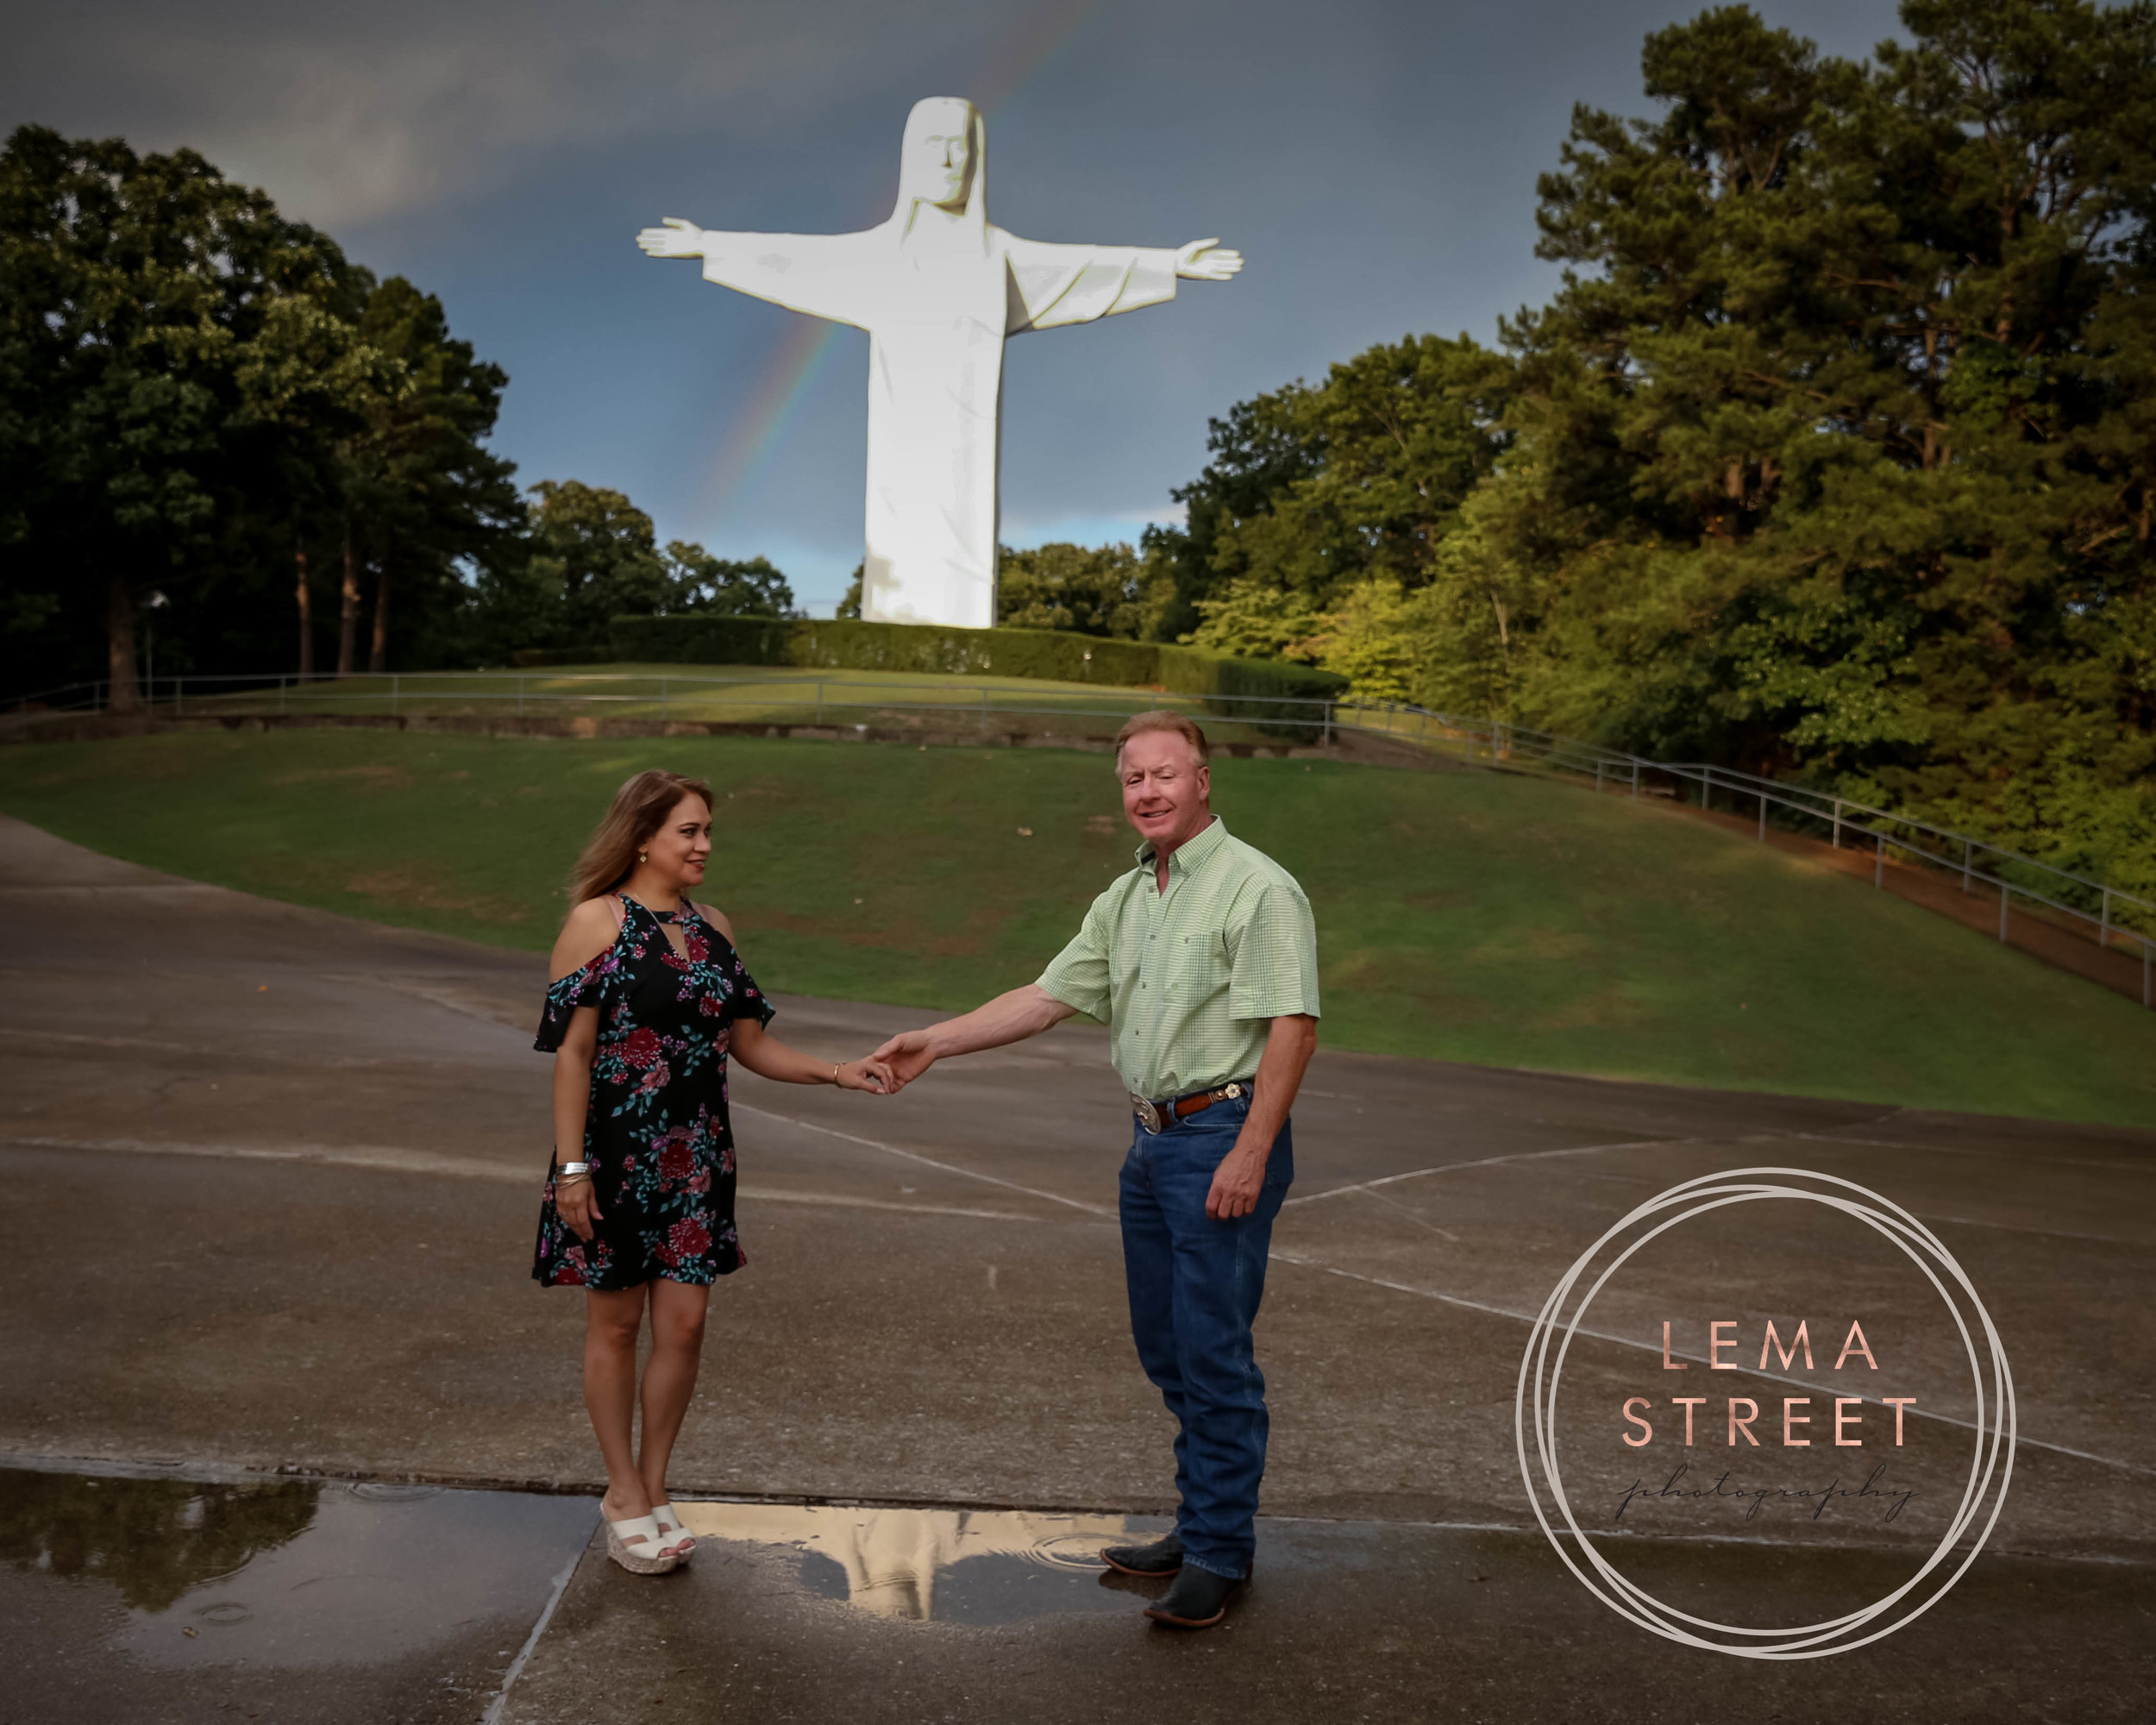 2018 Chuck and Maria Engagement Aug (2 of 3).jpg